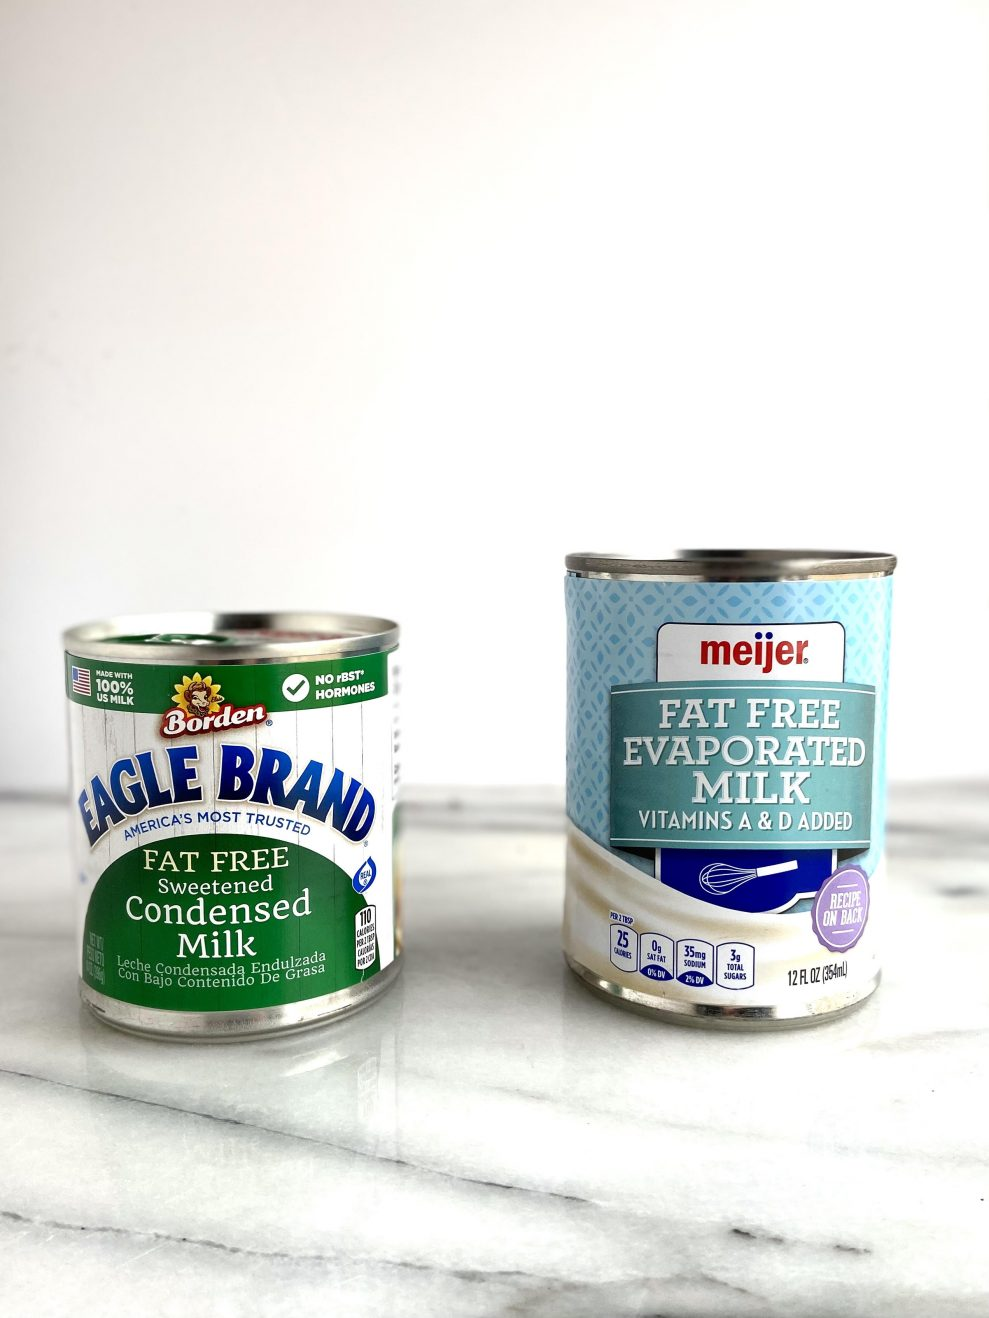 Sweetened Condensed Milk and Evaporated Milk